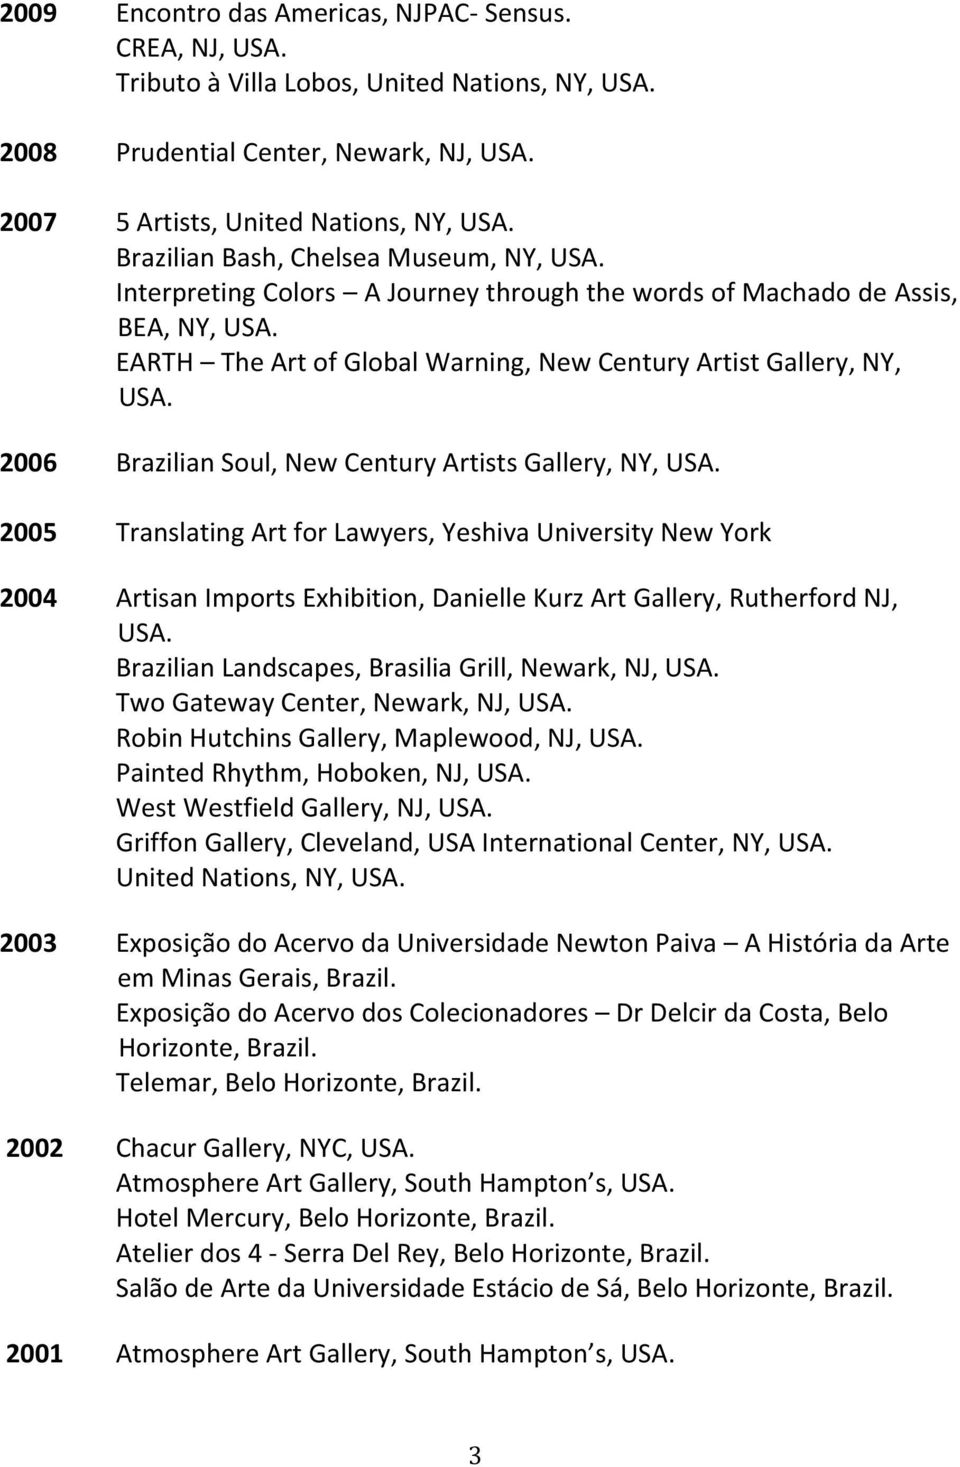 2006 Brazilian Soul, New Century Artists Gallery, NY, USA. 2005 Translating Art for Lawyers, Yeshiva University New York 2004 Artisan Imports Exhibition, Danielle Kurz Art Gallery, Rutherford NJ, USA.